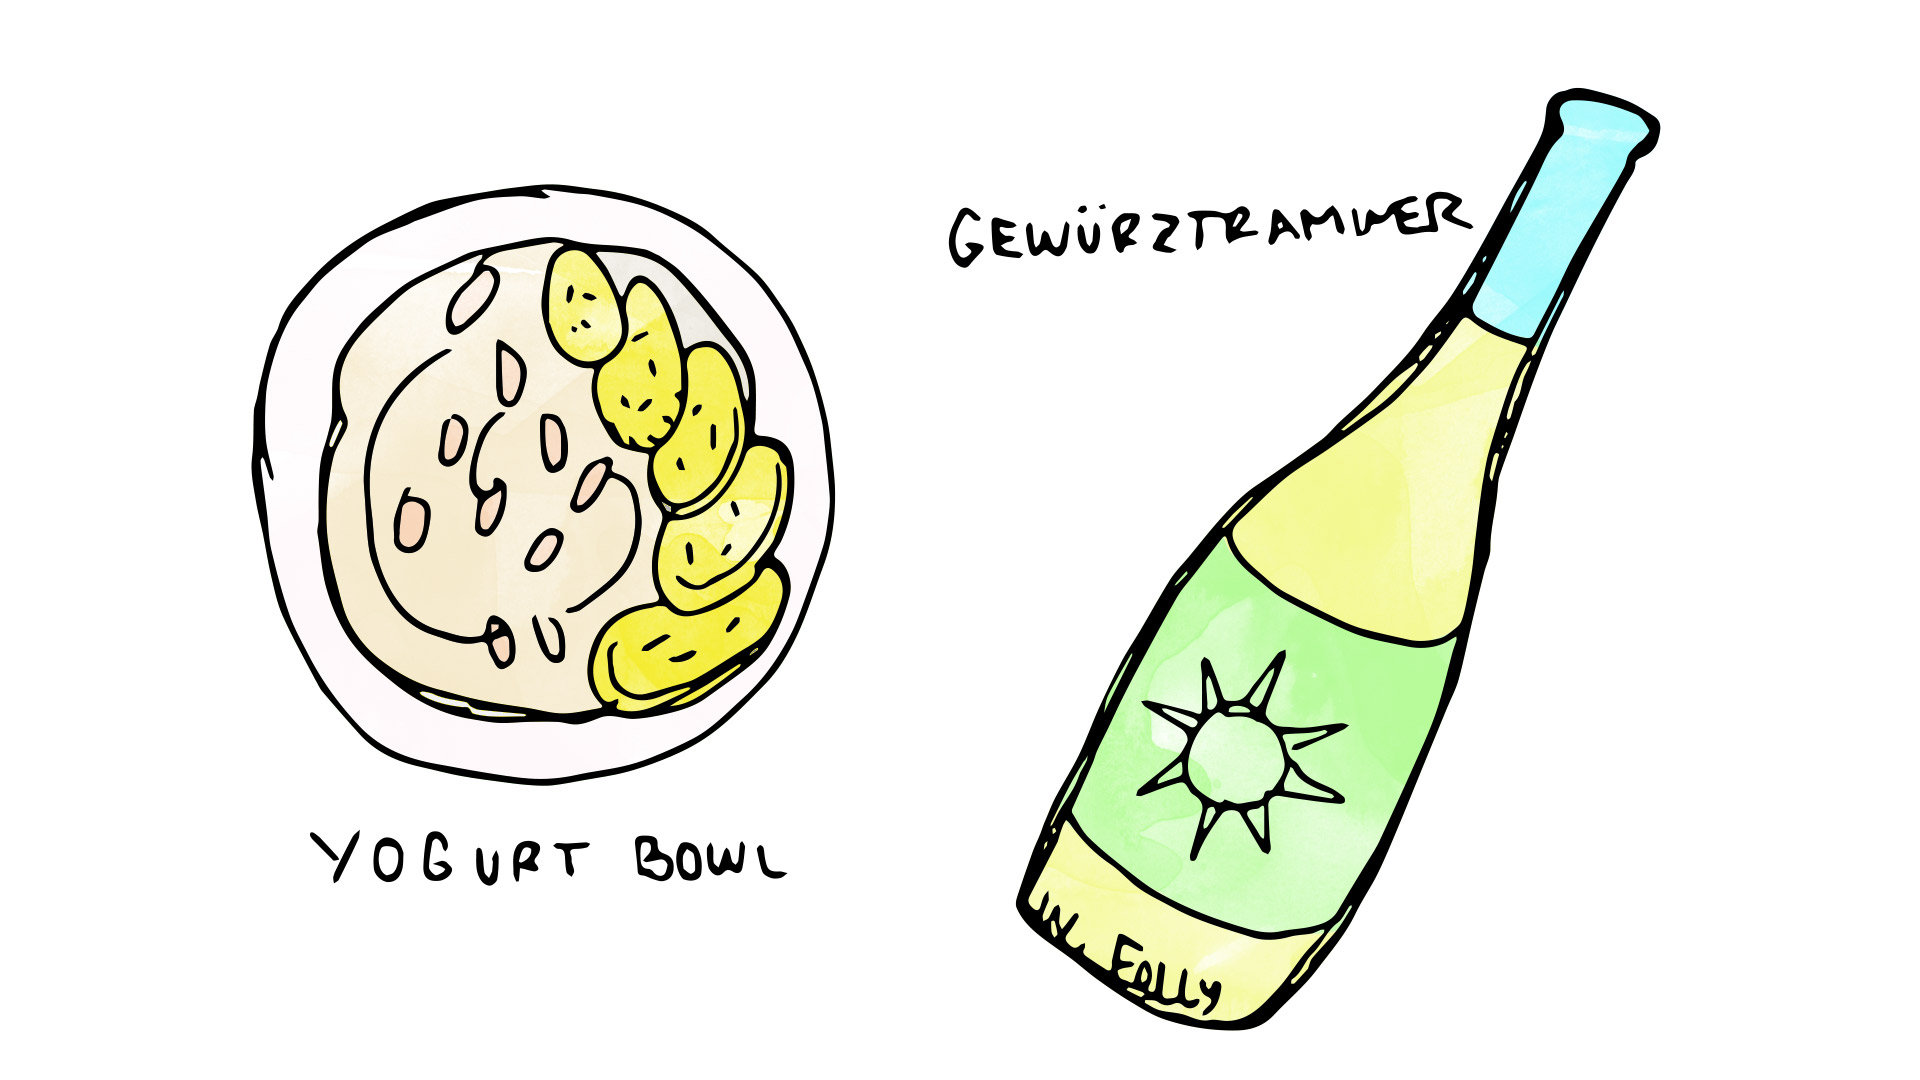 yogurt bowl wine pairing with gewurztraminer illustration by Wine Folly